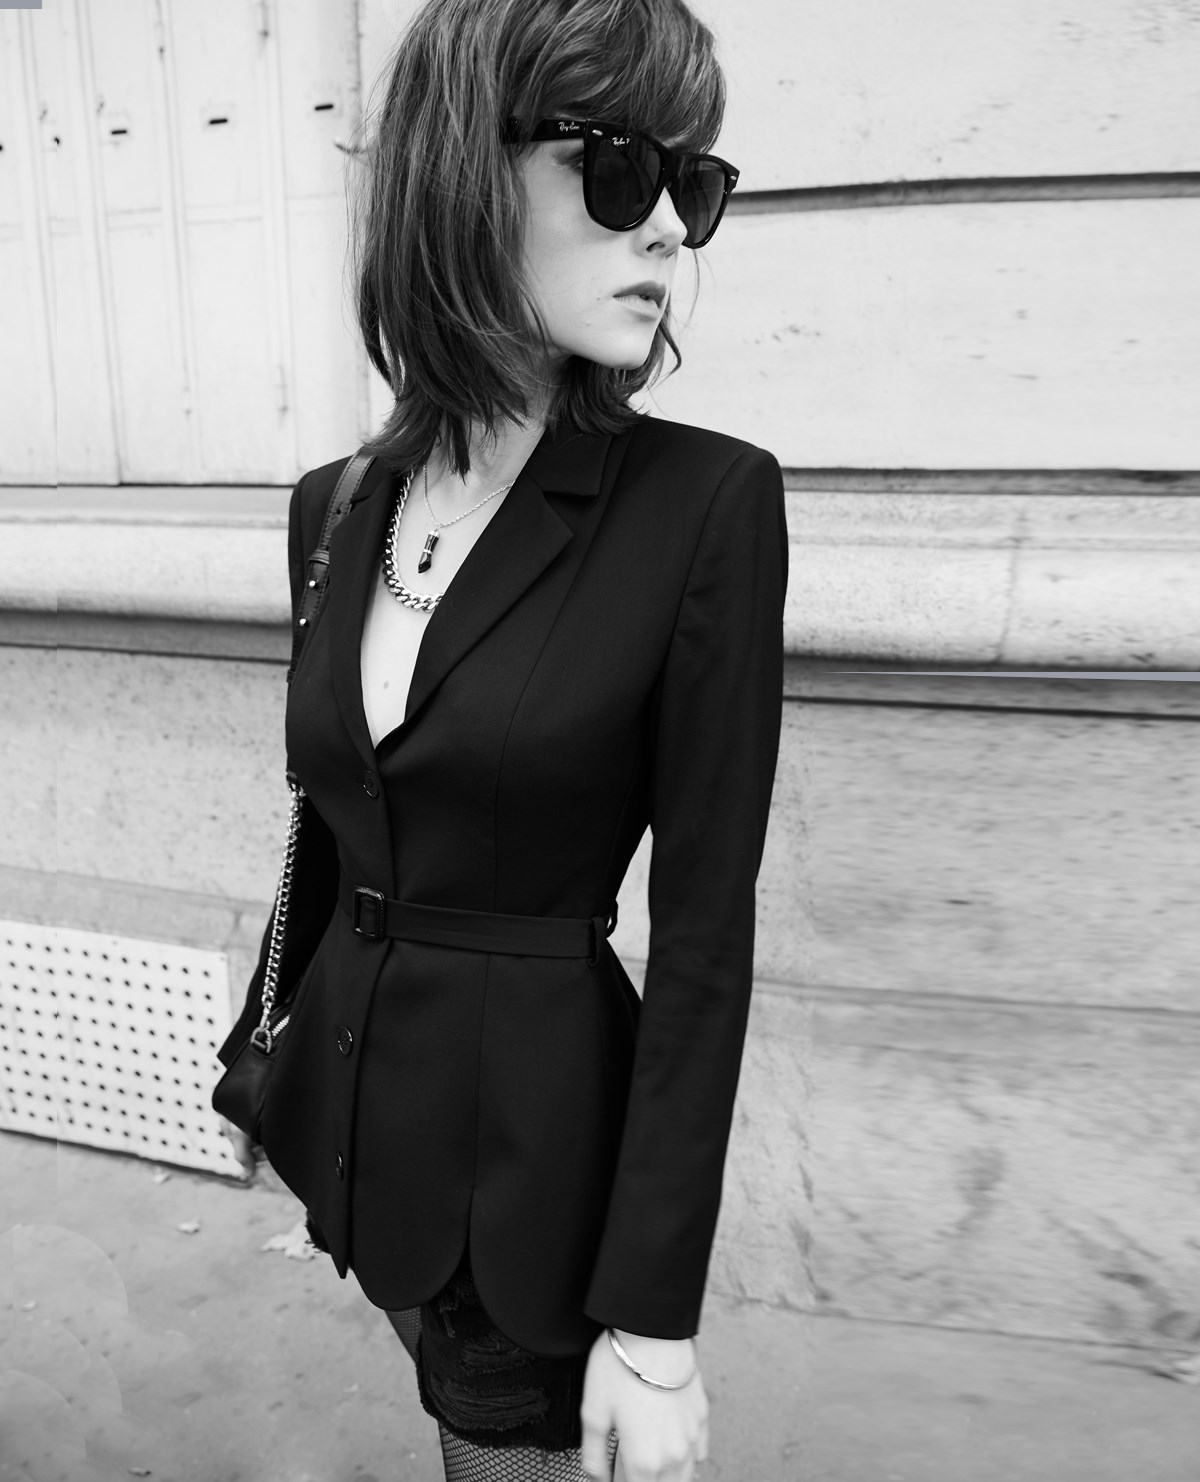 Black wool suit jacket with belt and openings